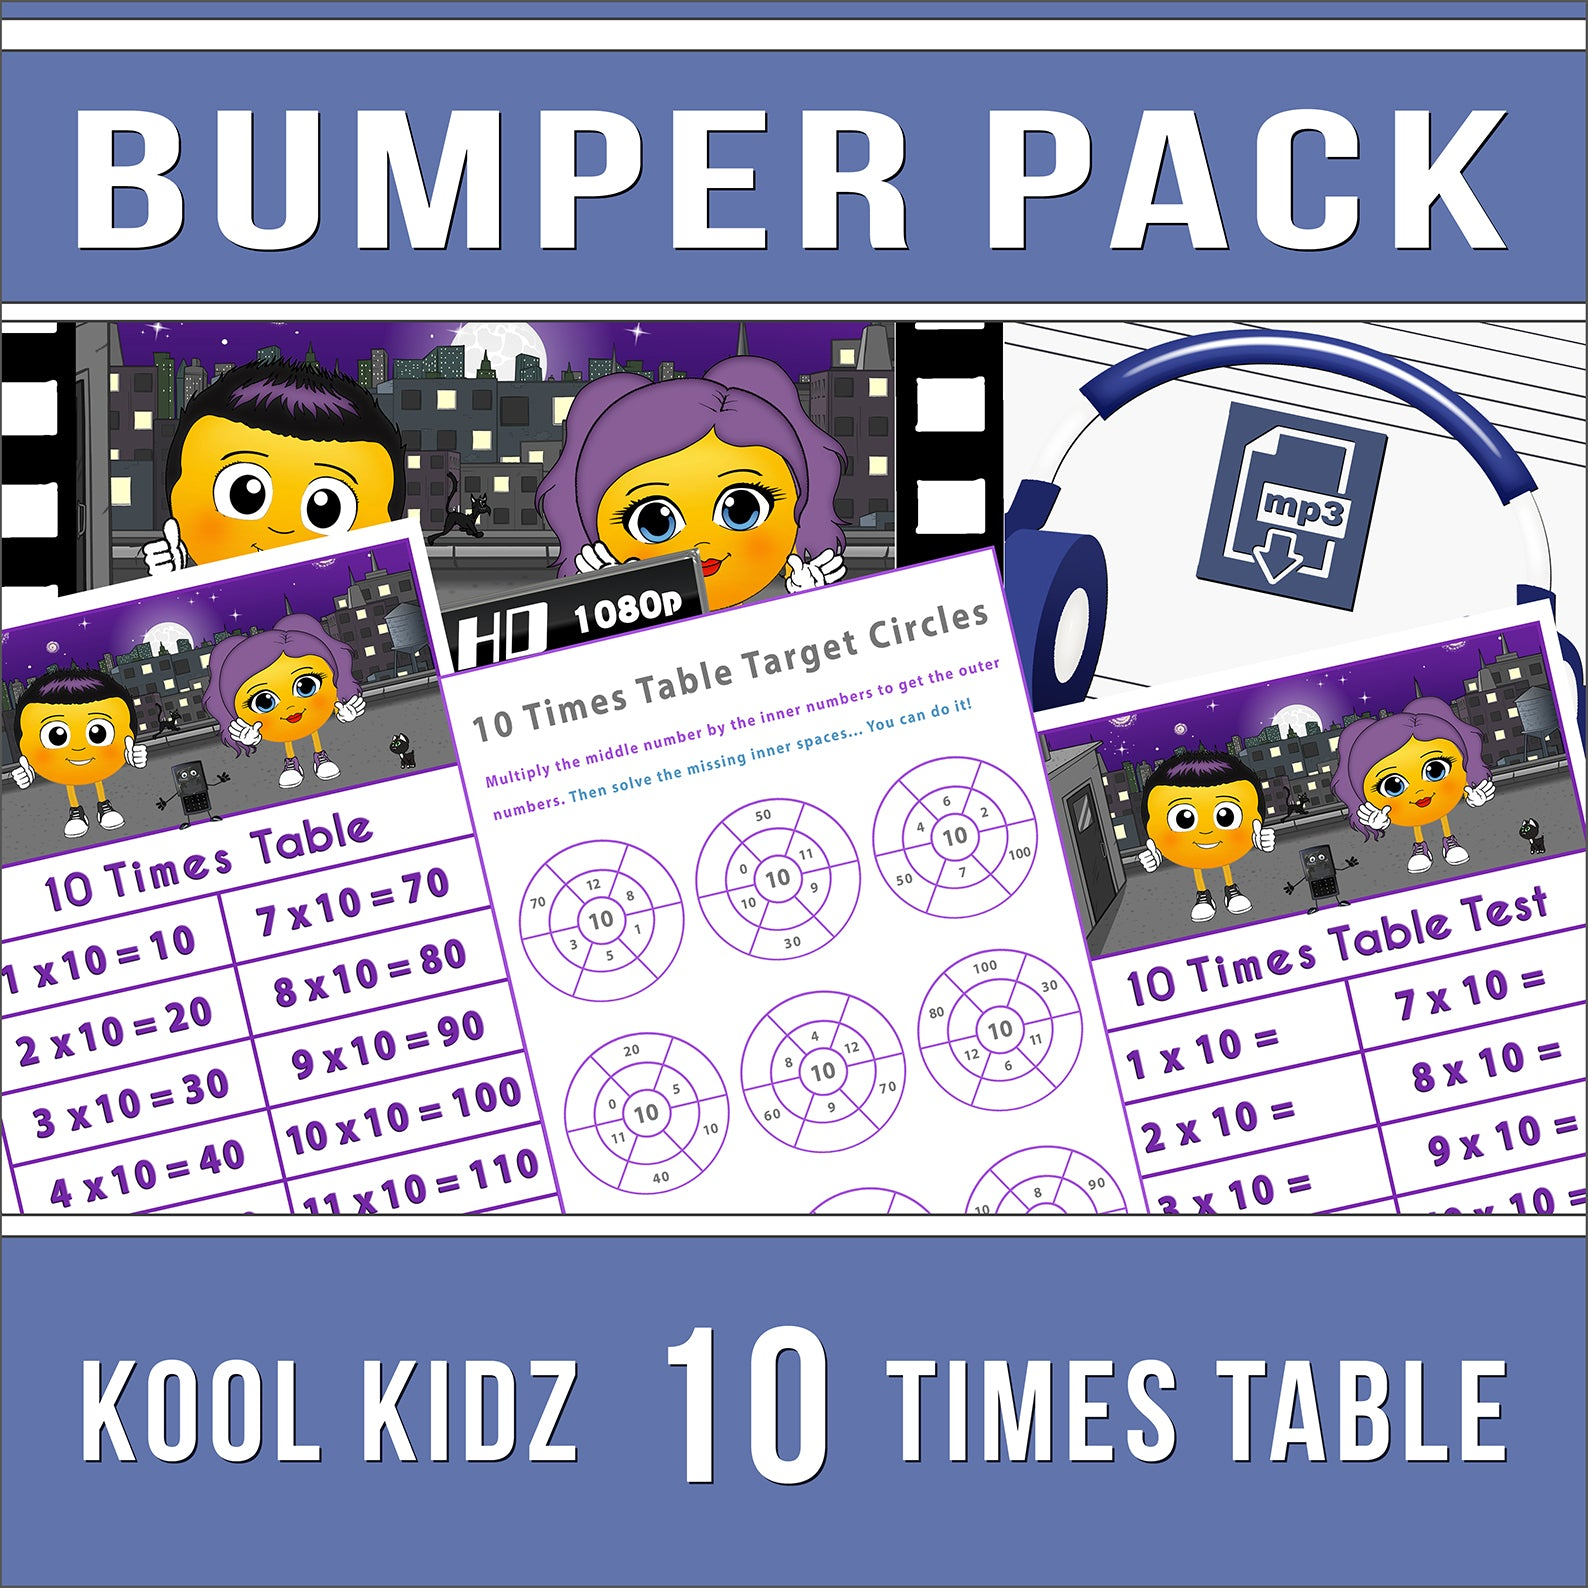 10 Times Table Bumper Pack